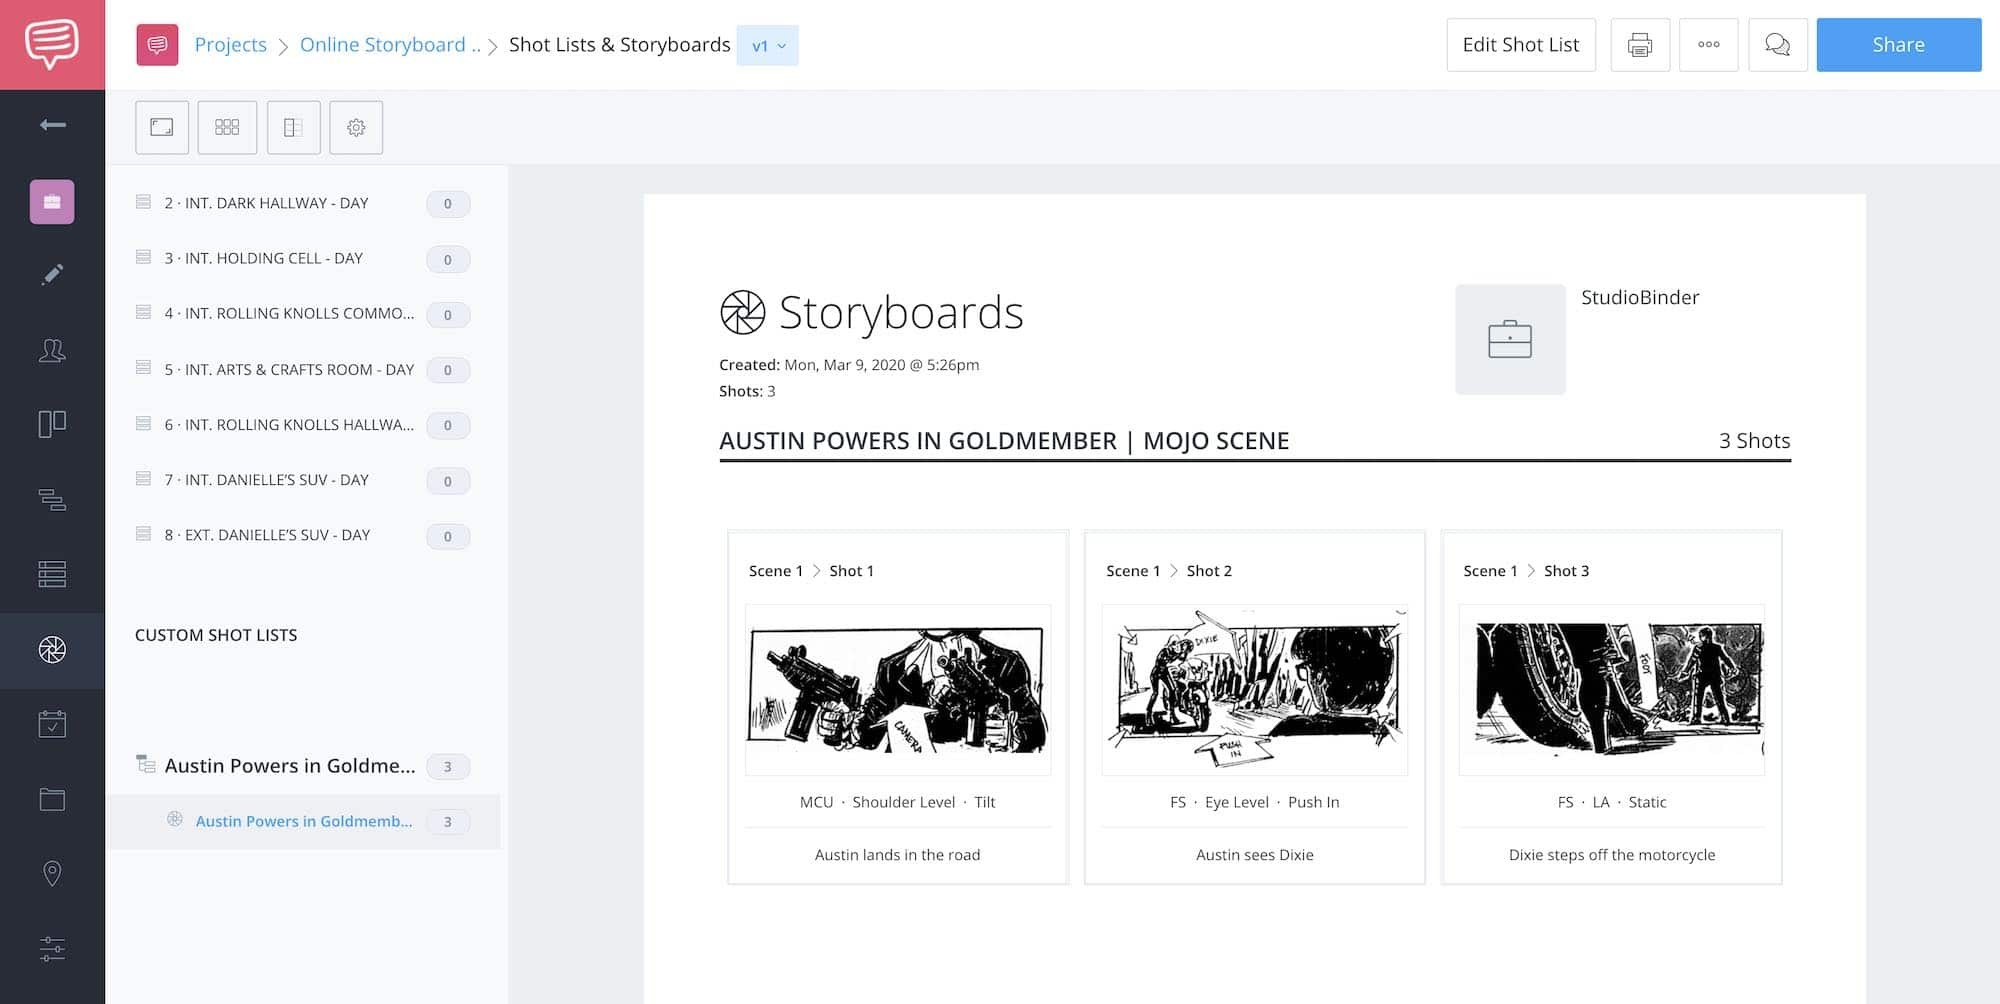 Storyboard Creator Steps - Austin Powers Goldmember - StudioBinder - 18